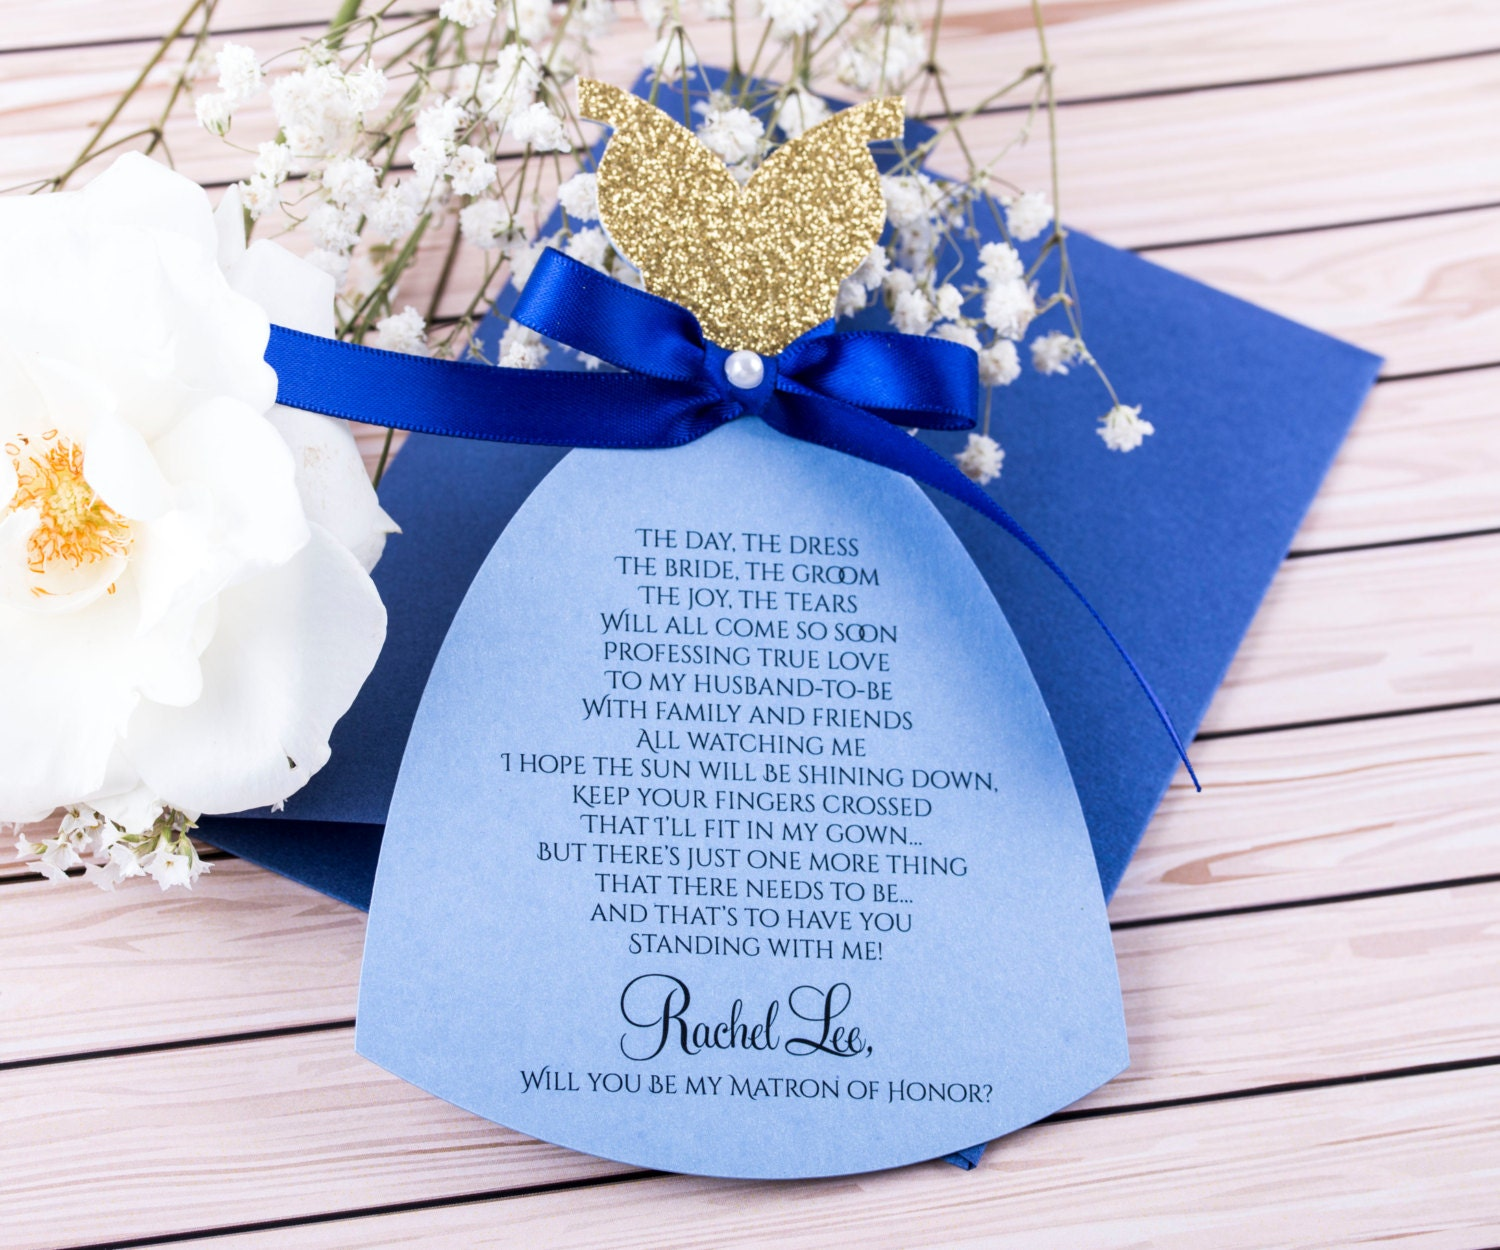 Royal Blue Wedding Invitation Cards: Royal Blue And Gold Bridesmaid Invitation. Will You Be My